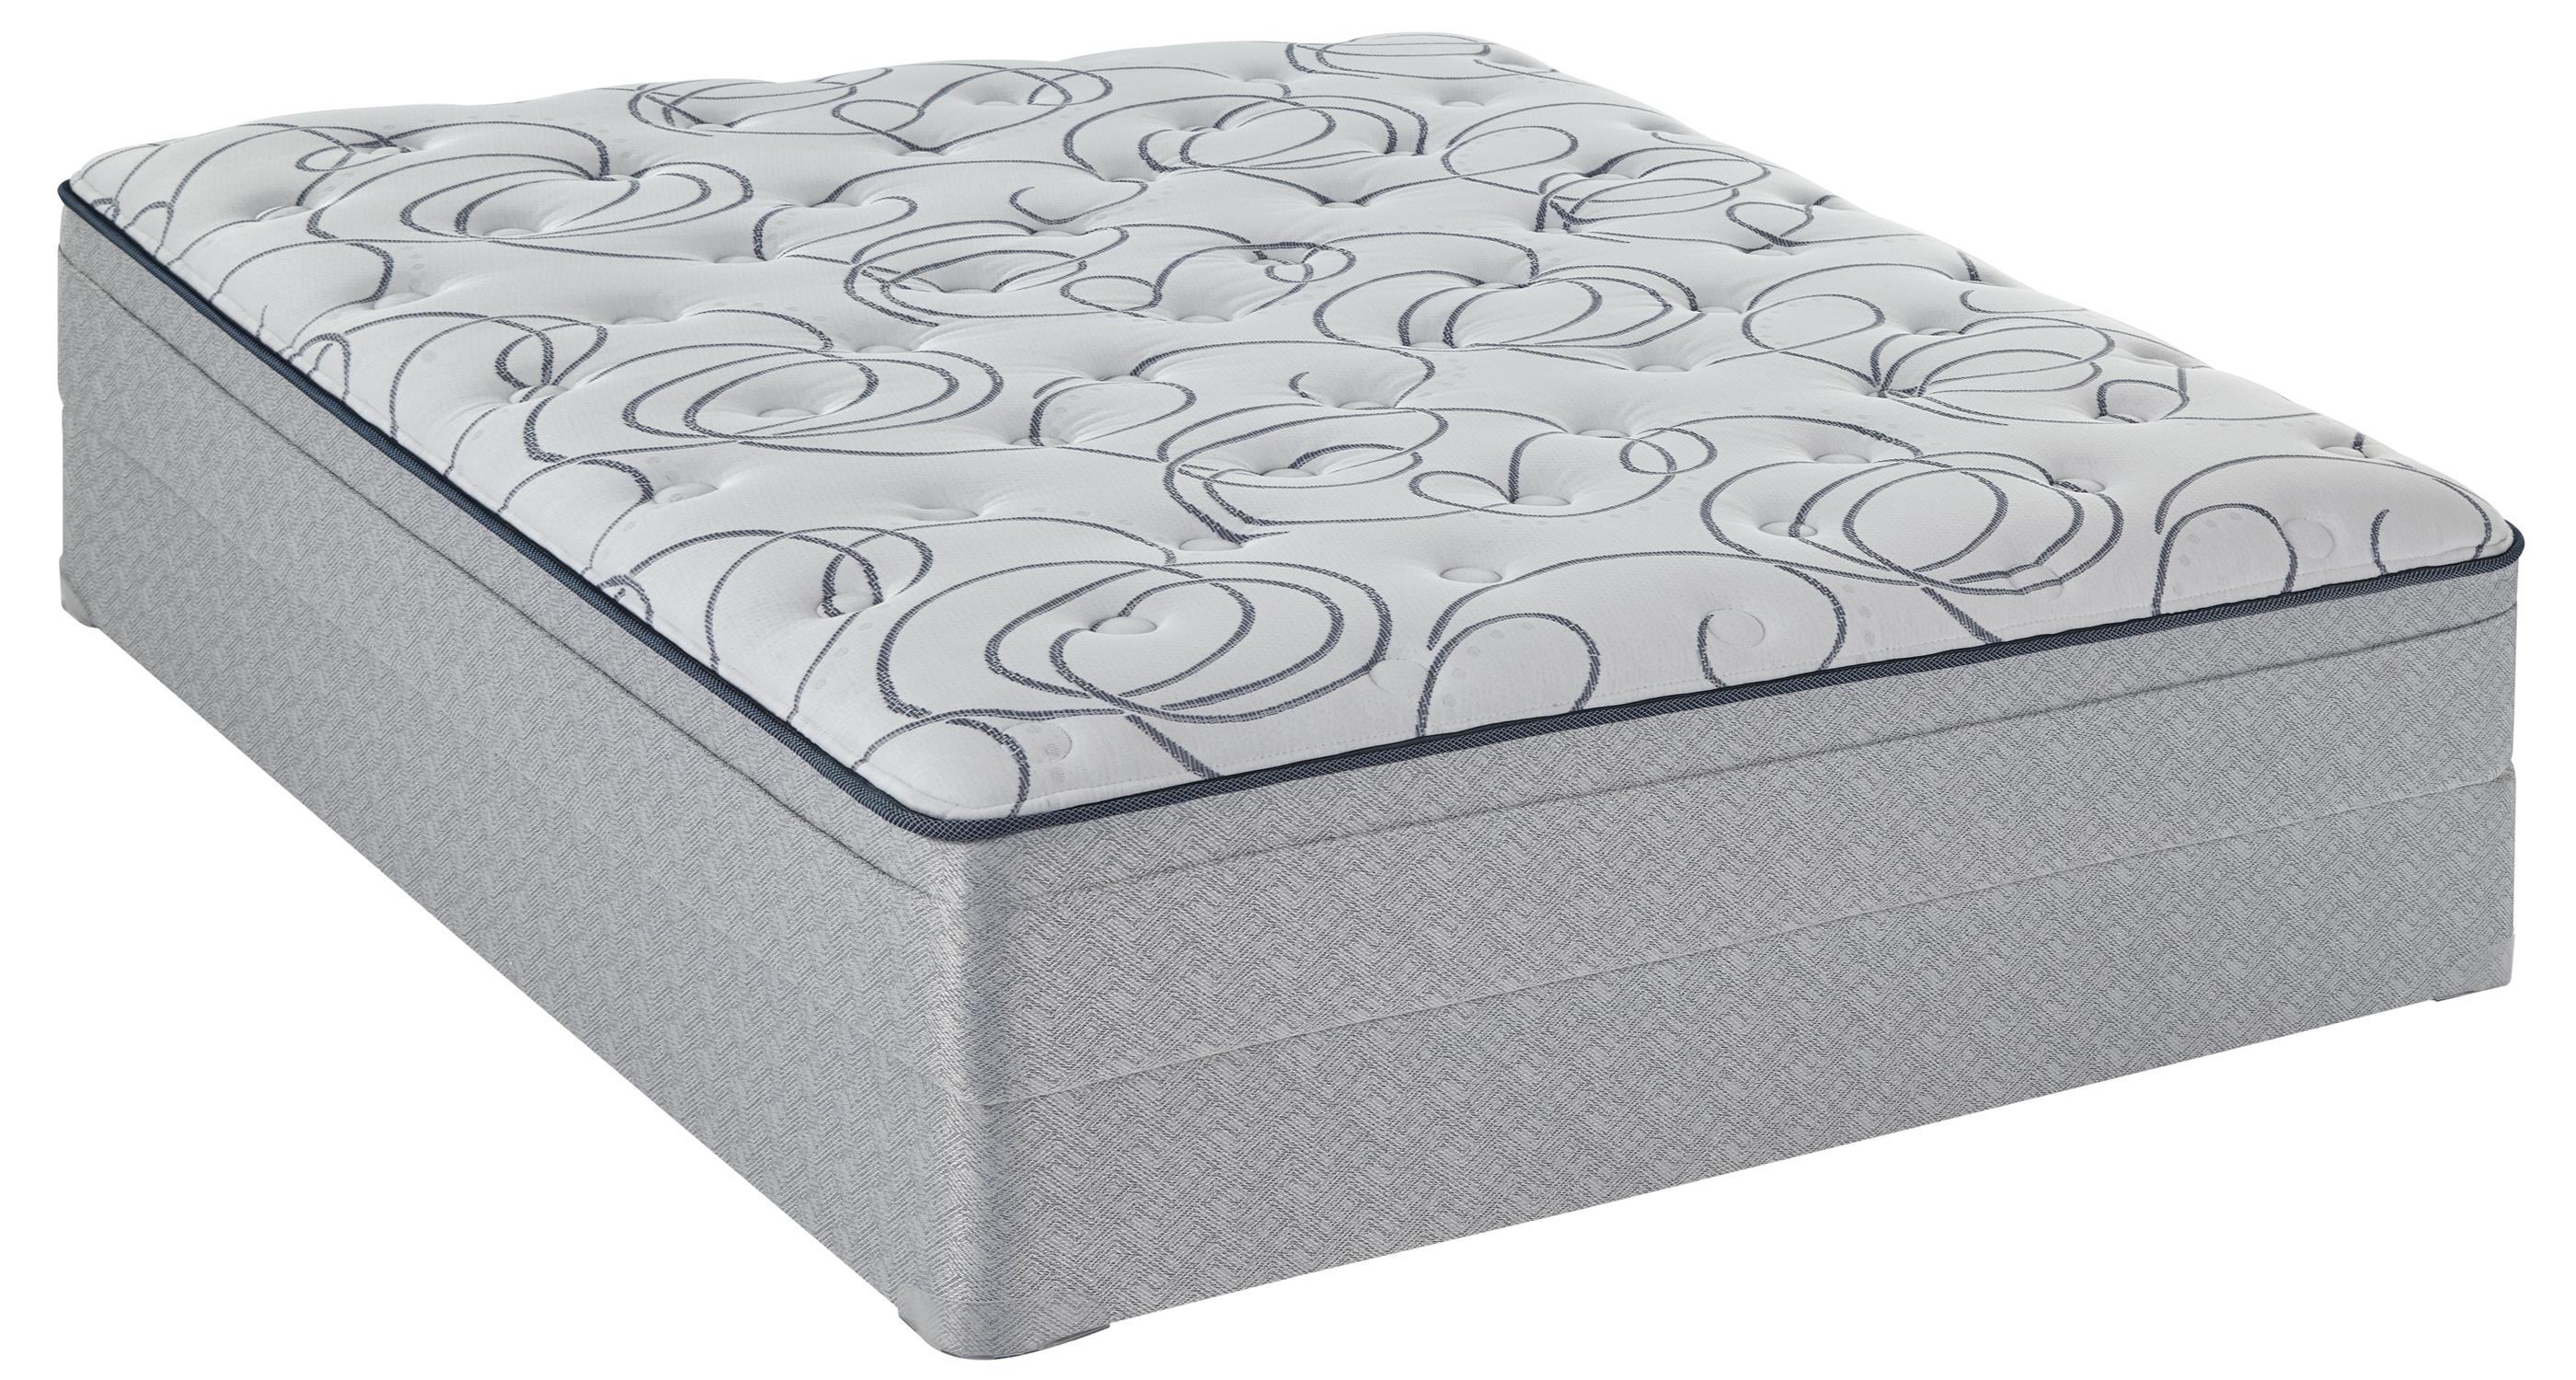 Sealy Turnbridge Queen Plush ET Mattress LP Set - Item Number: PlushET-Q+SBLPbox-Q